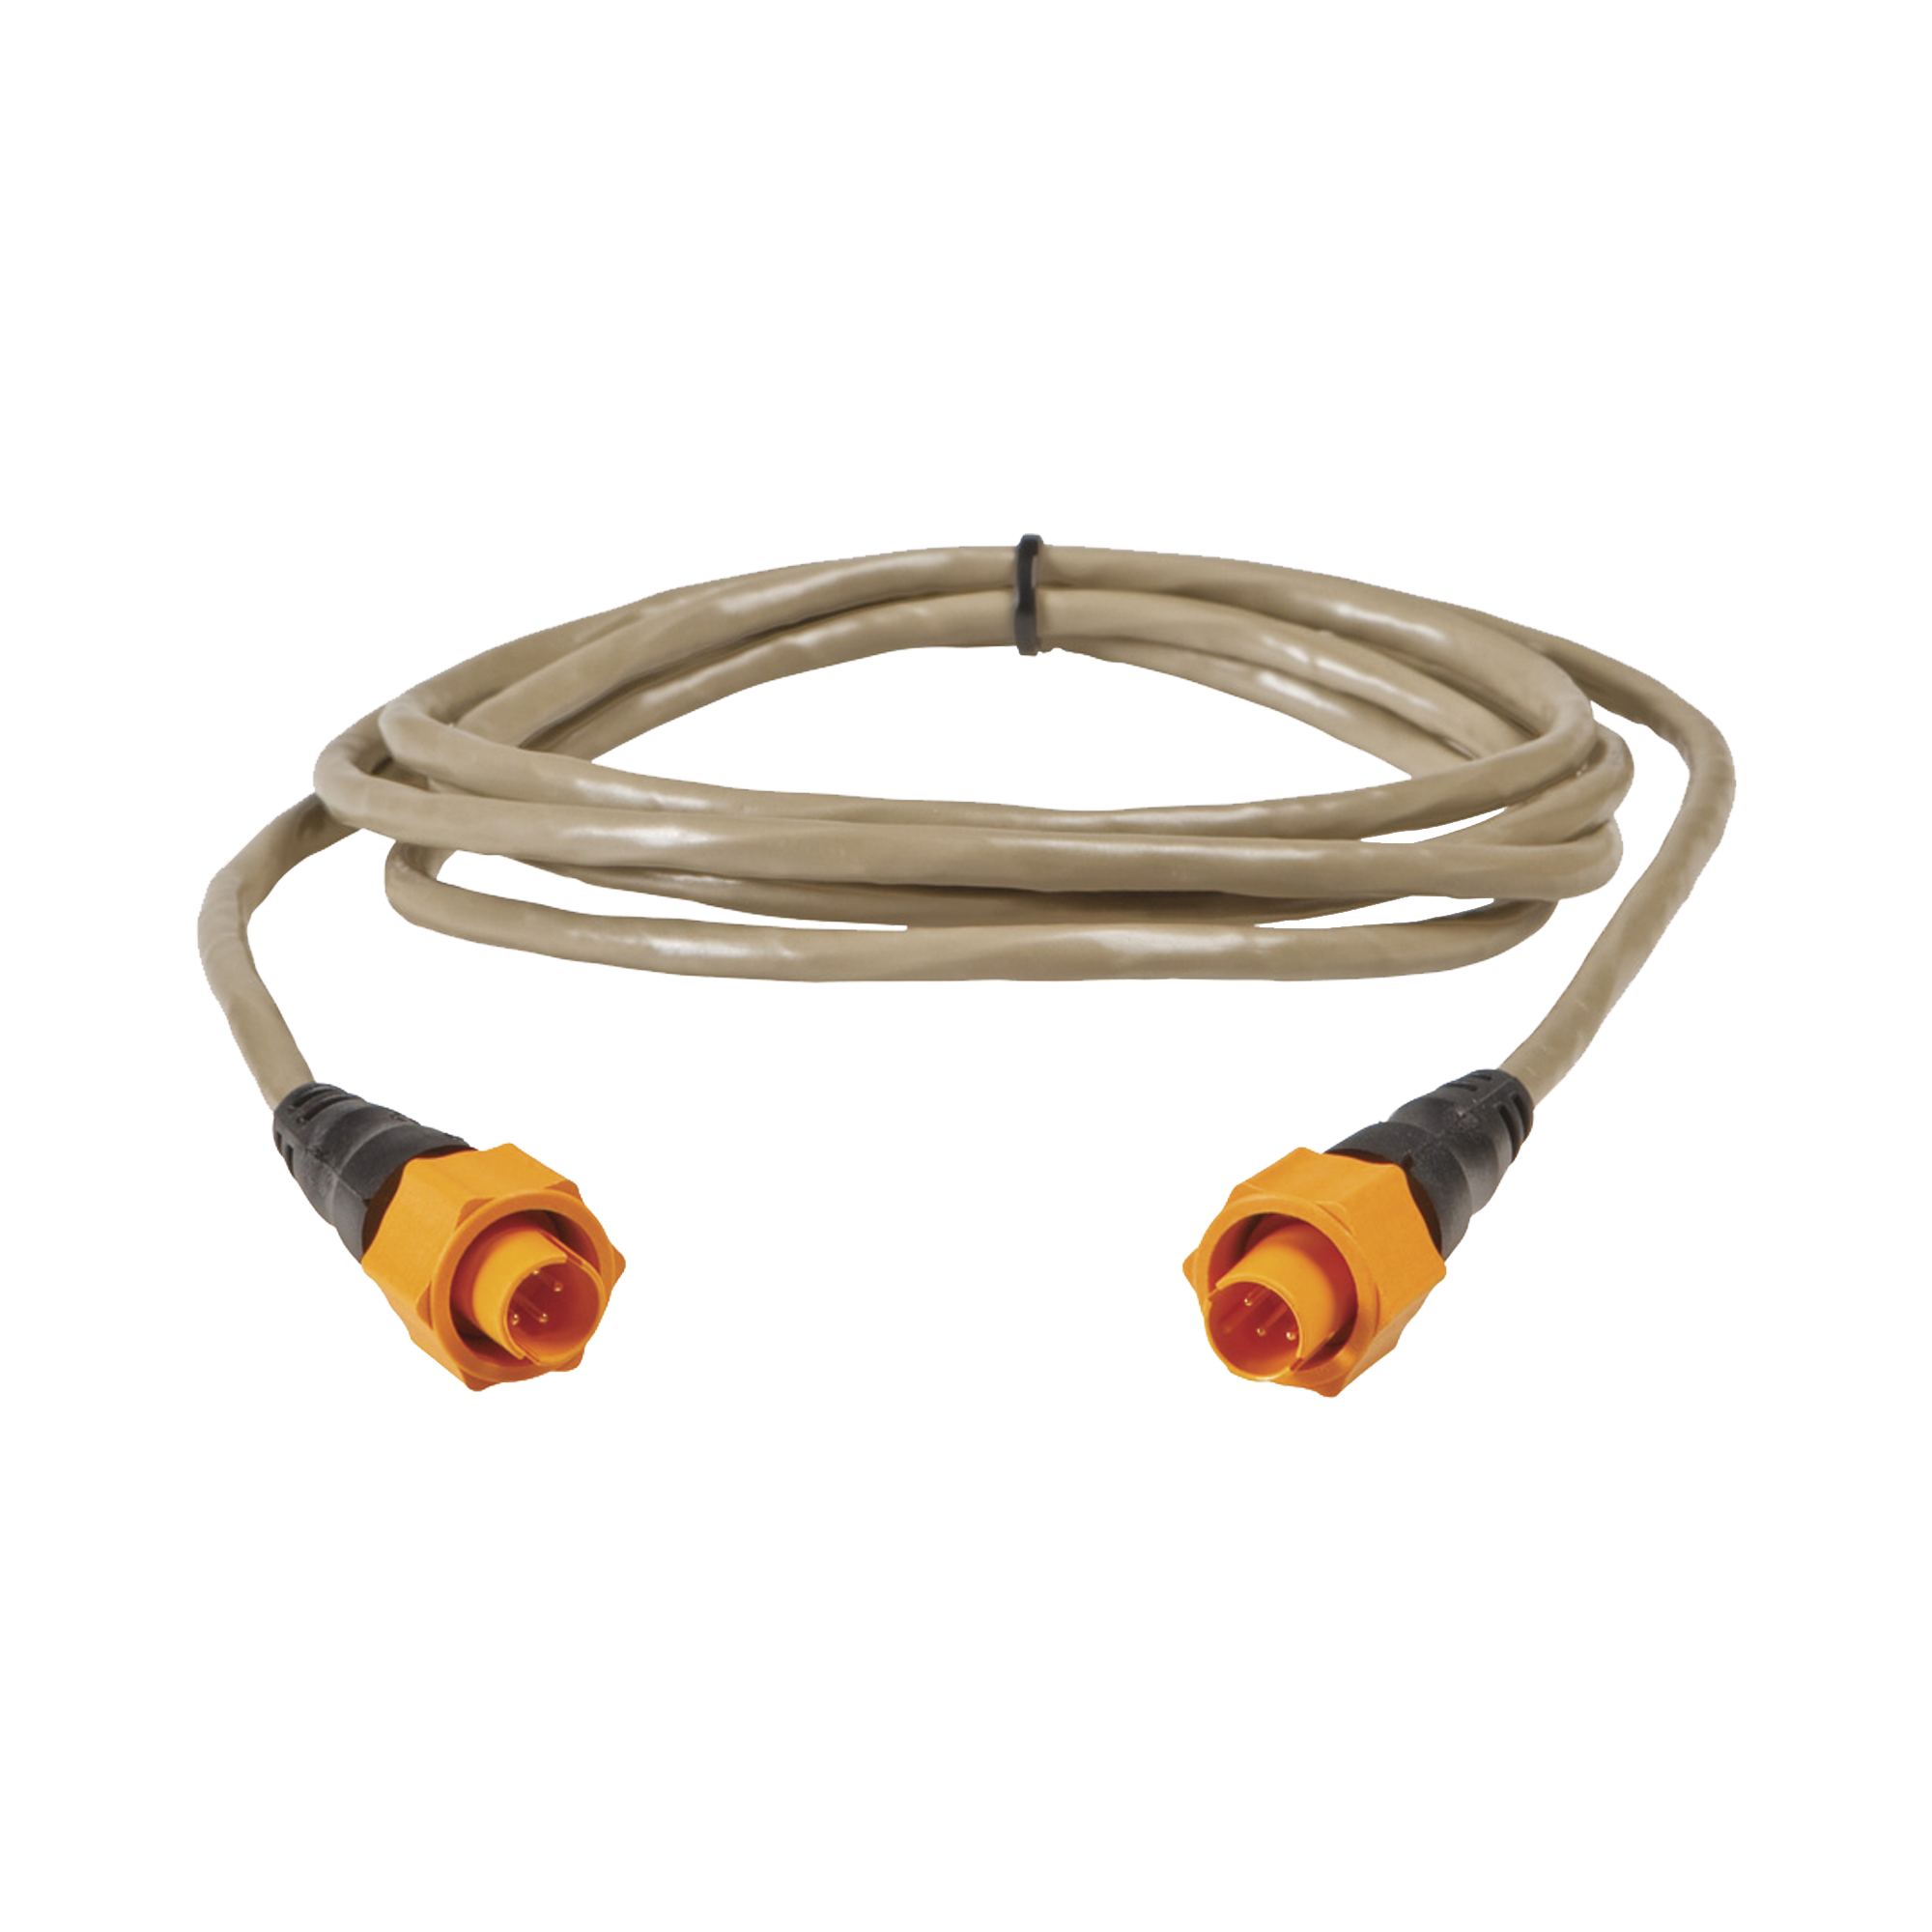 Cable Ethernet Amarillo 5 Pin 2 m (6.5 ft)